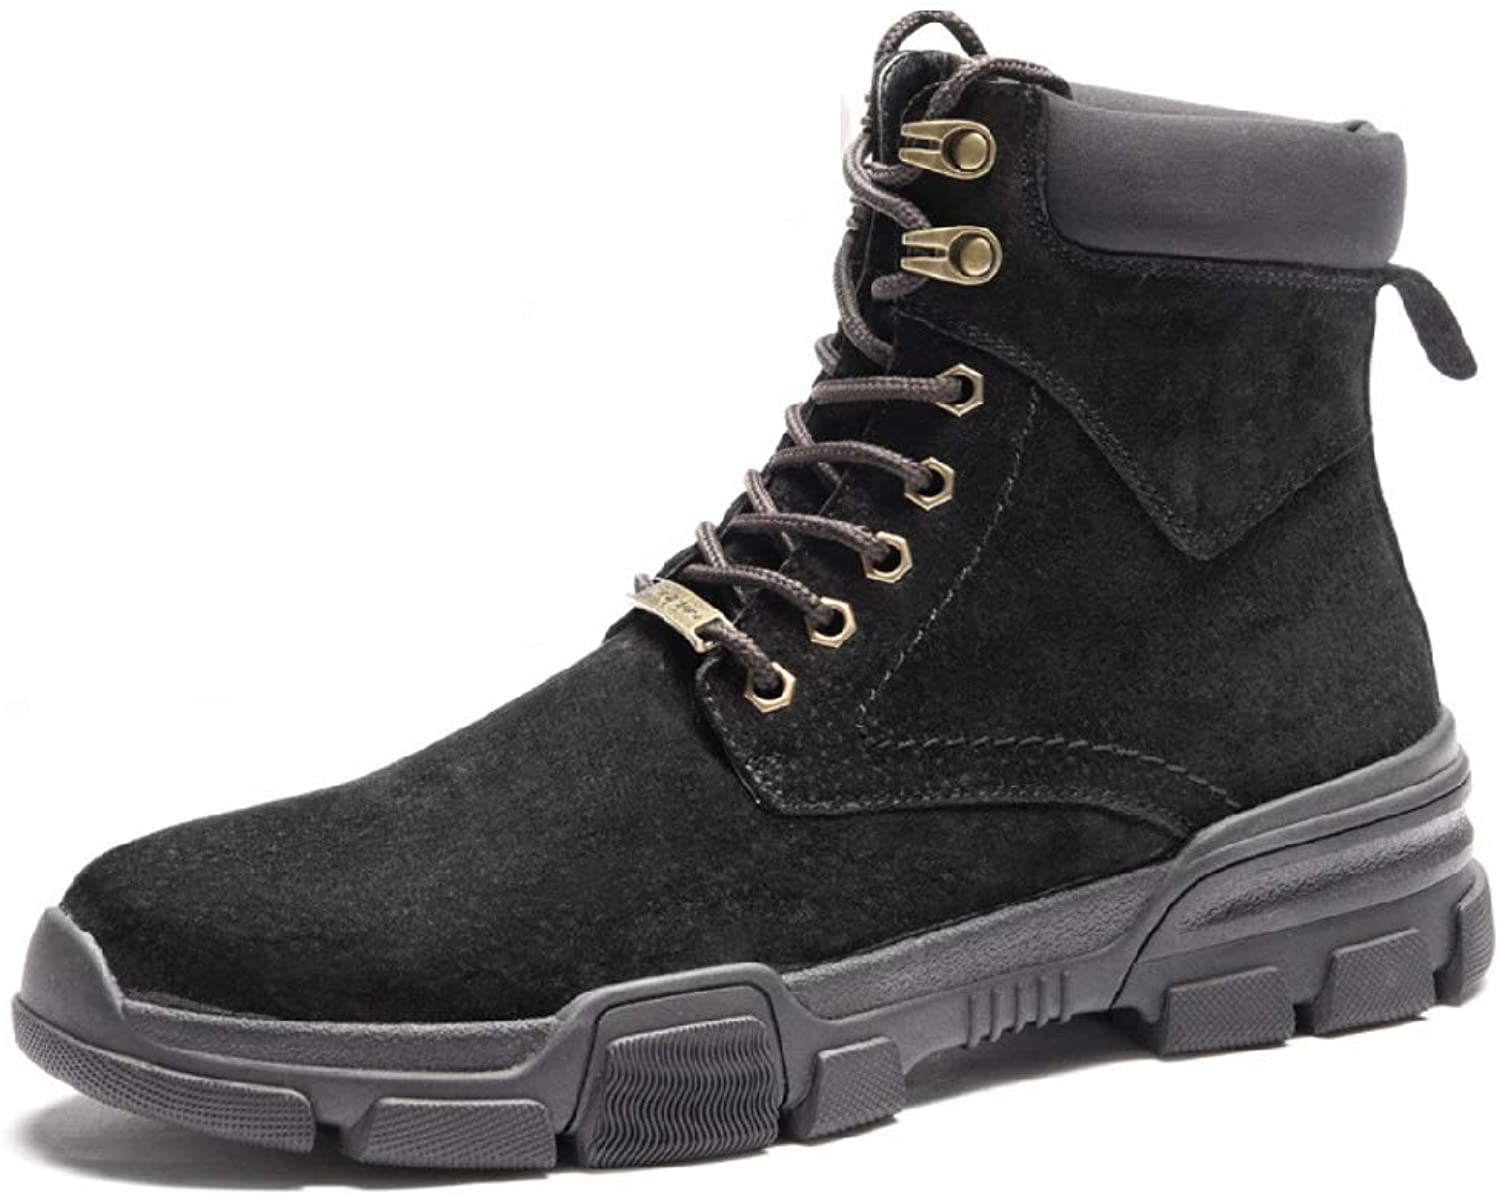 Men's and Bare Boots High shoes Desert Short Boots Leather Trend Tooling Military Boots Wild England Martin Boots Men